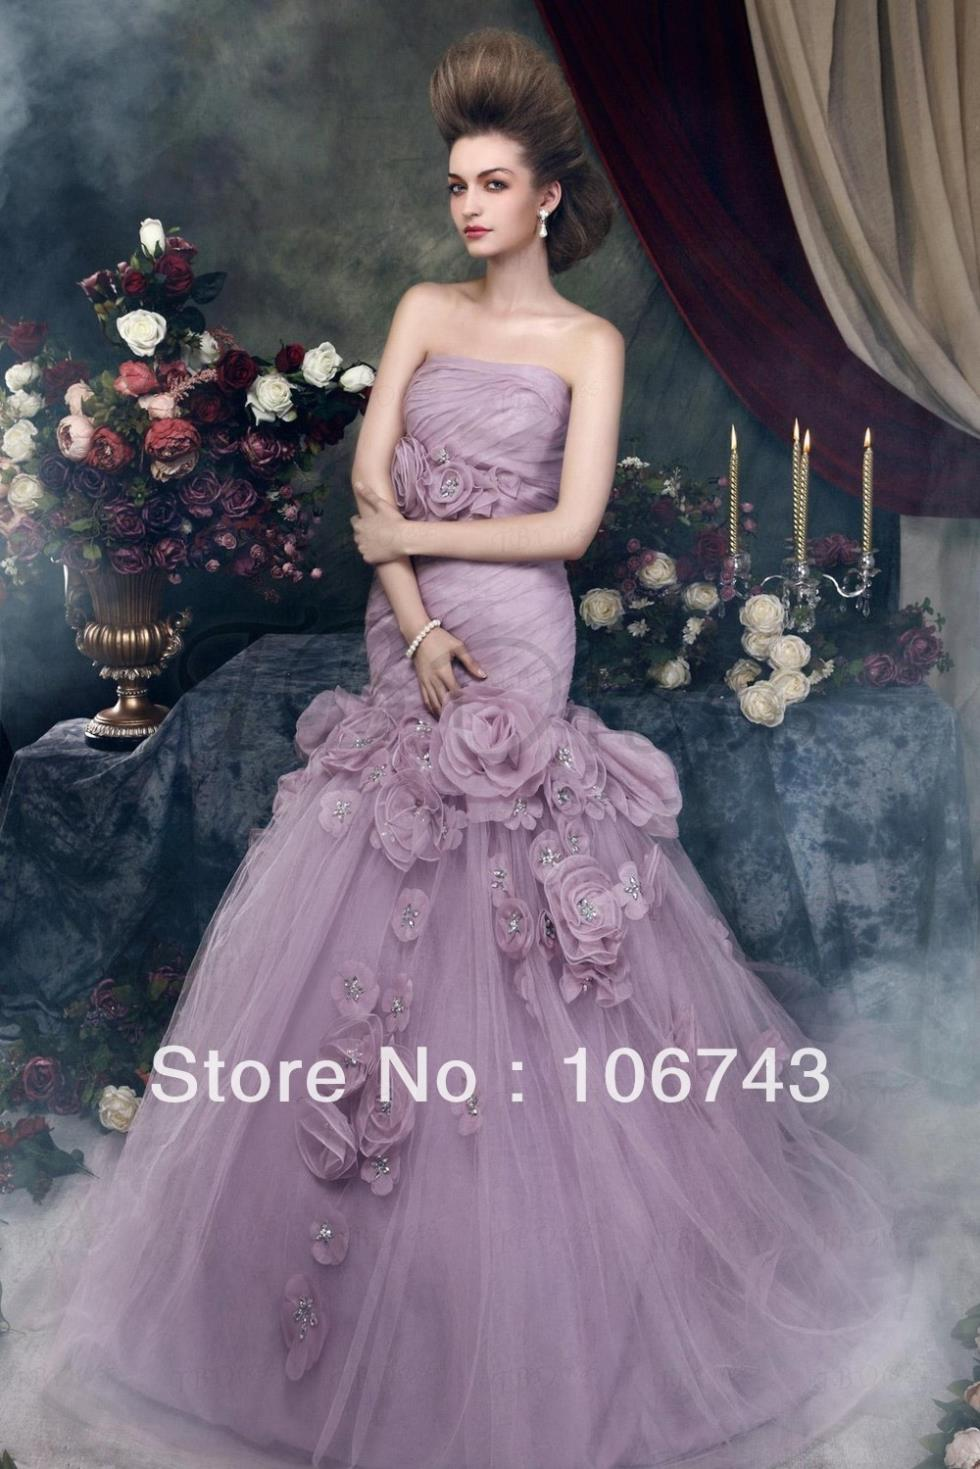 Free Shipping Brautkleid 2019 Victorian Purple Tulle Fishtail Bridal Gowns Real Mermaid Tail Handmade Bridesmaid Dresses